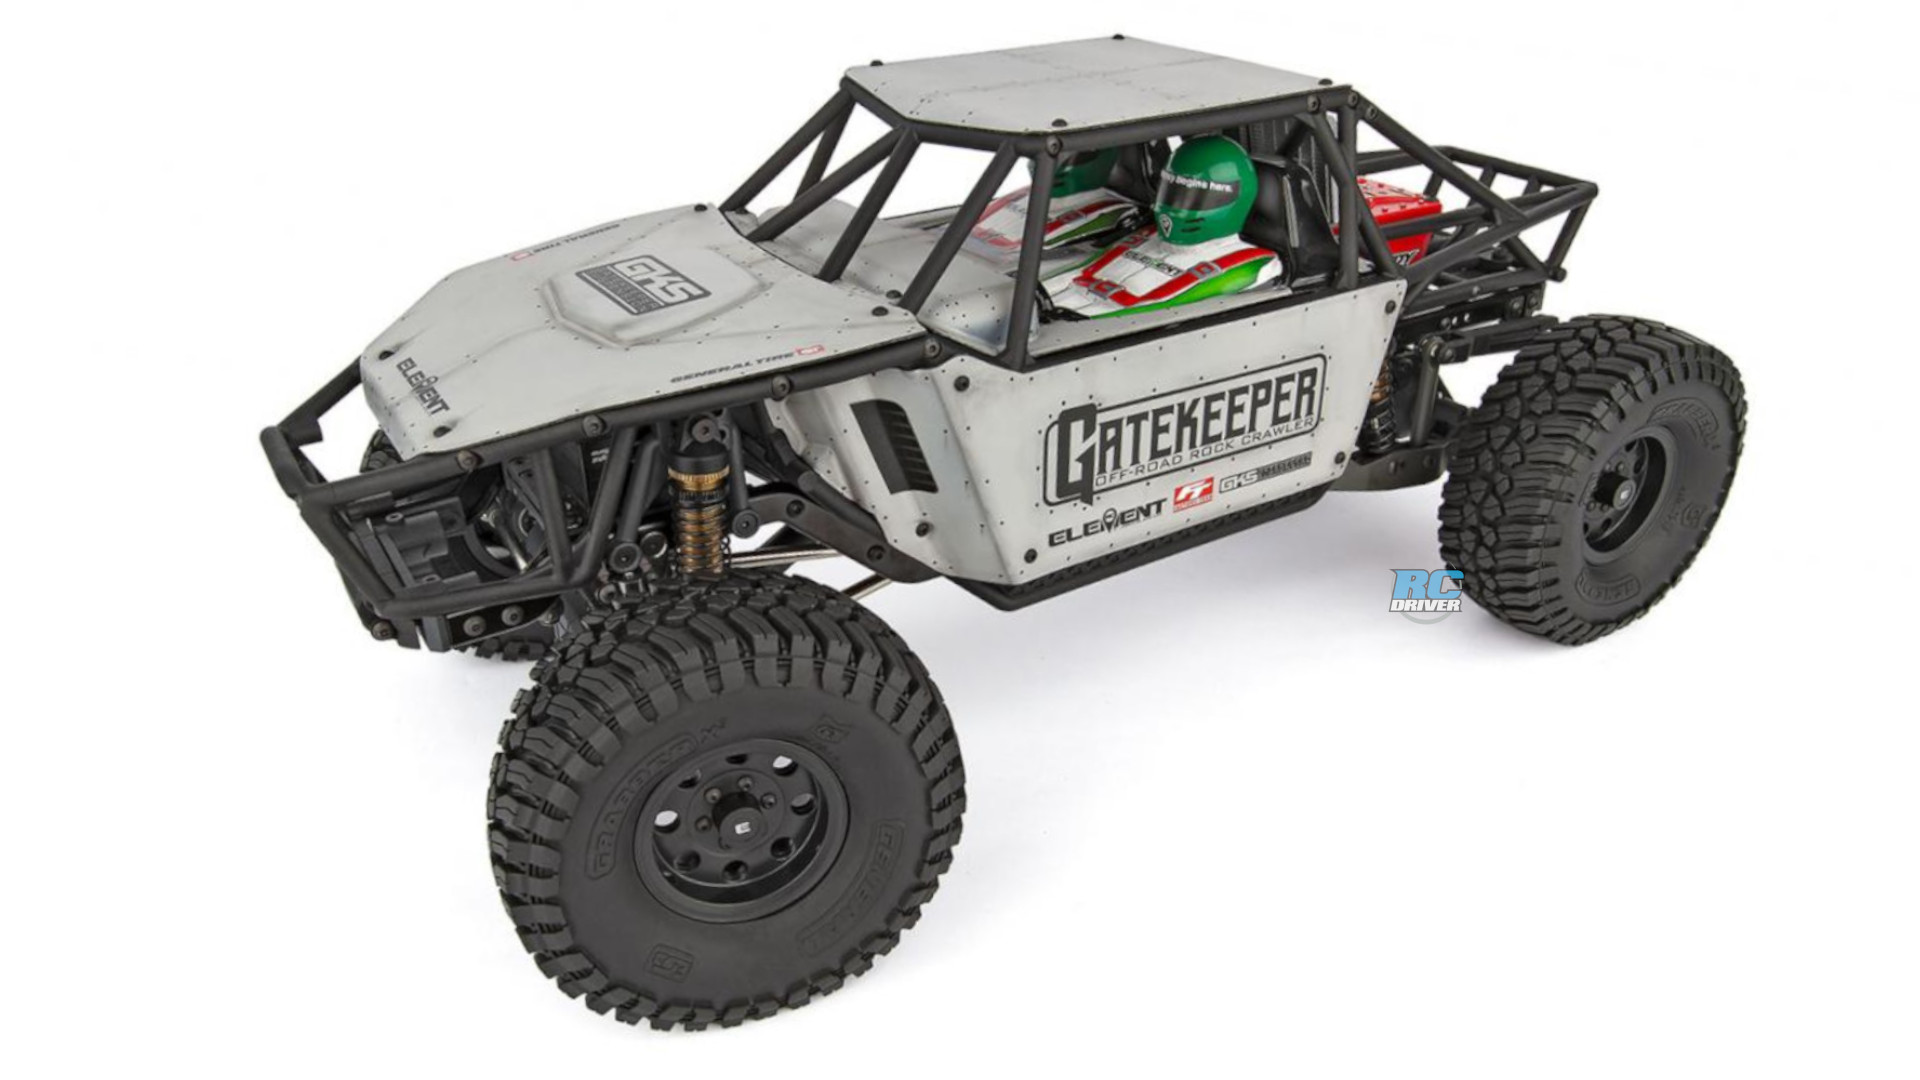 Element RC Enduro Gatekeeper Rock Crawler/Trail truck builder's kit